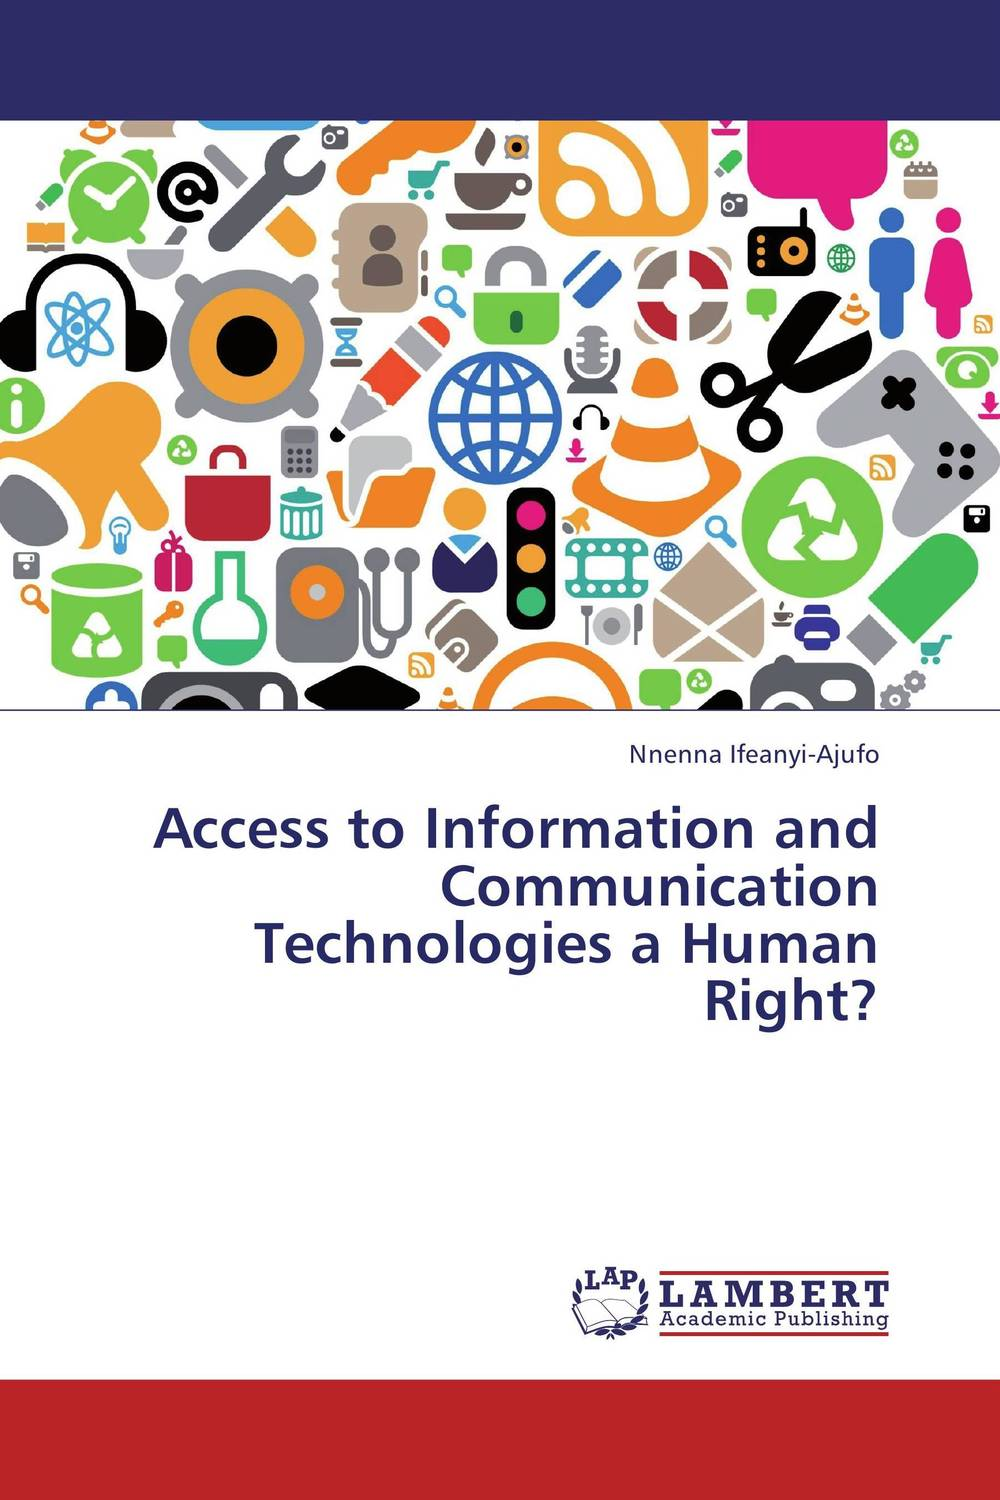 Access to Information and Communication Technologies a Human Right? icts and development